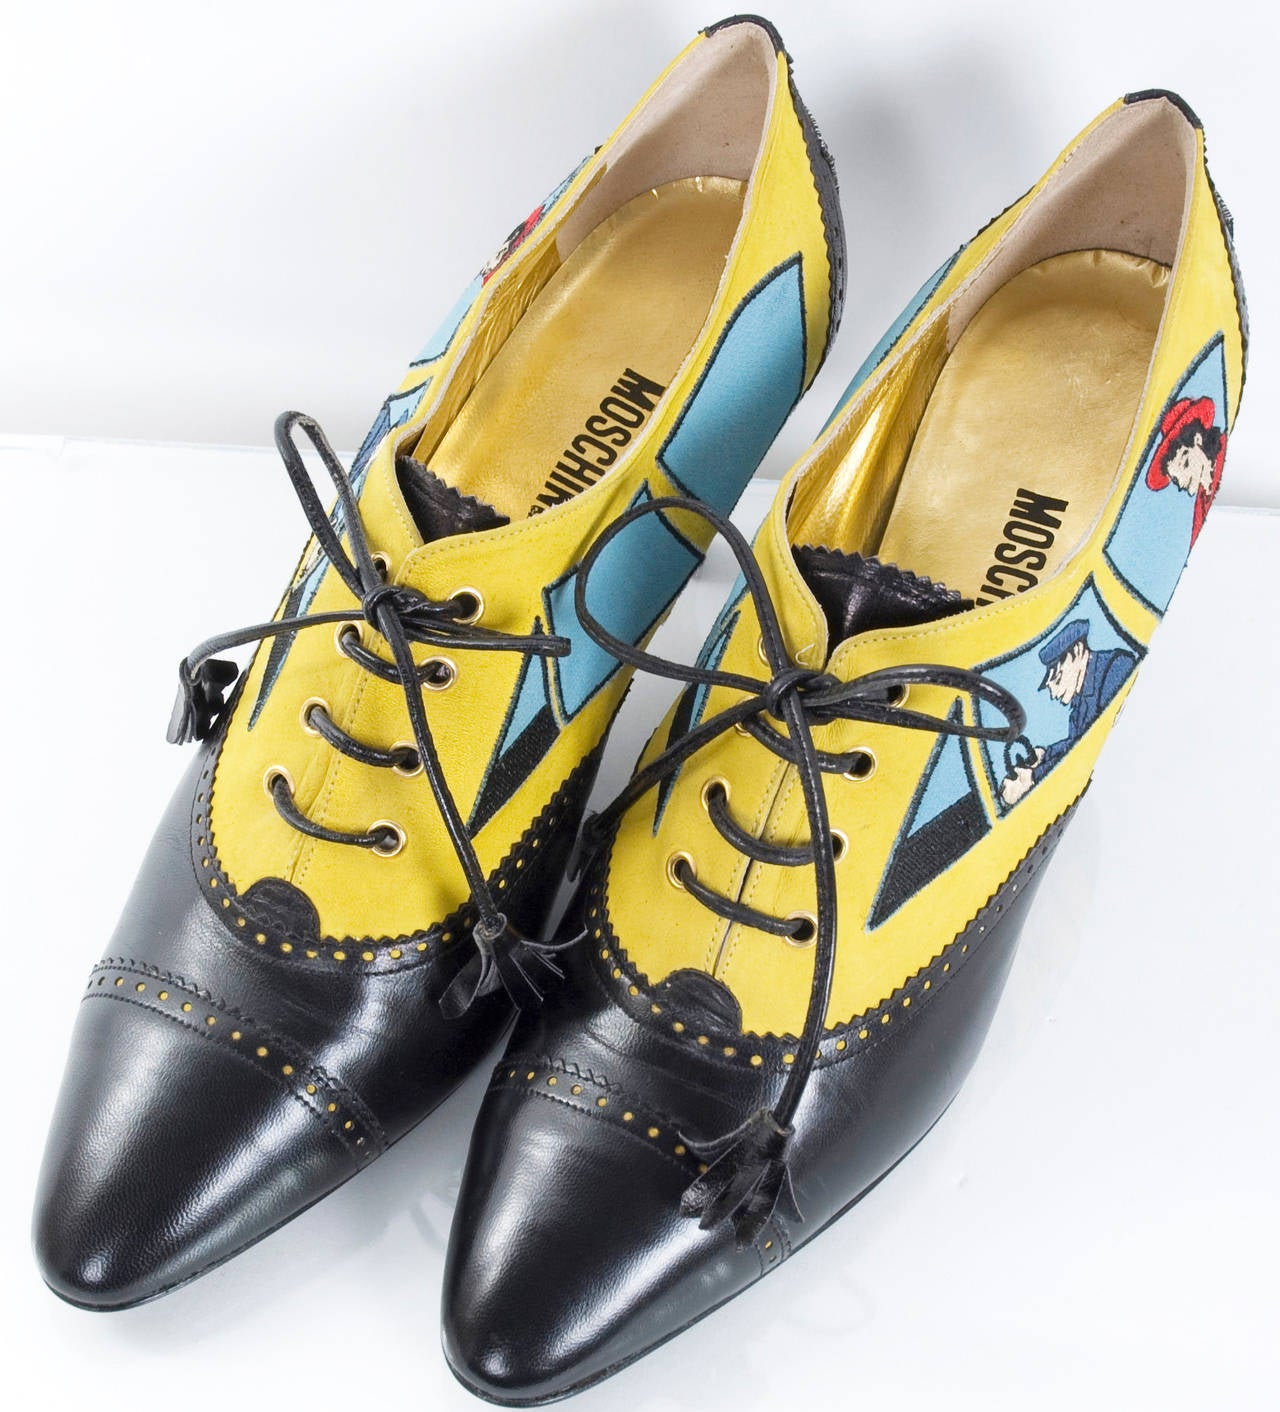 80's Moschino Car&Driver Shoe.